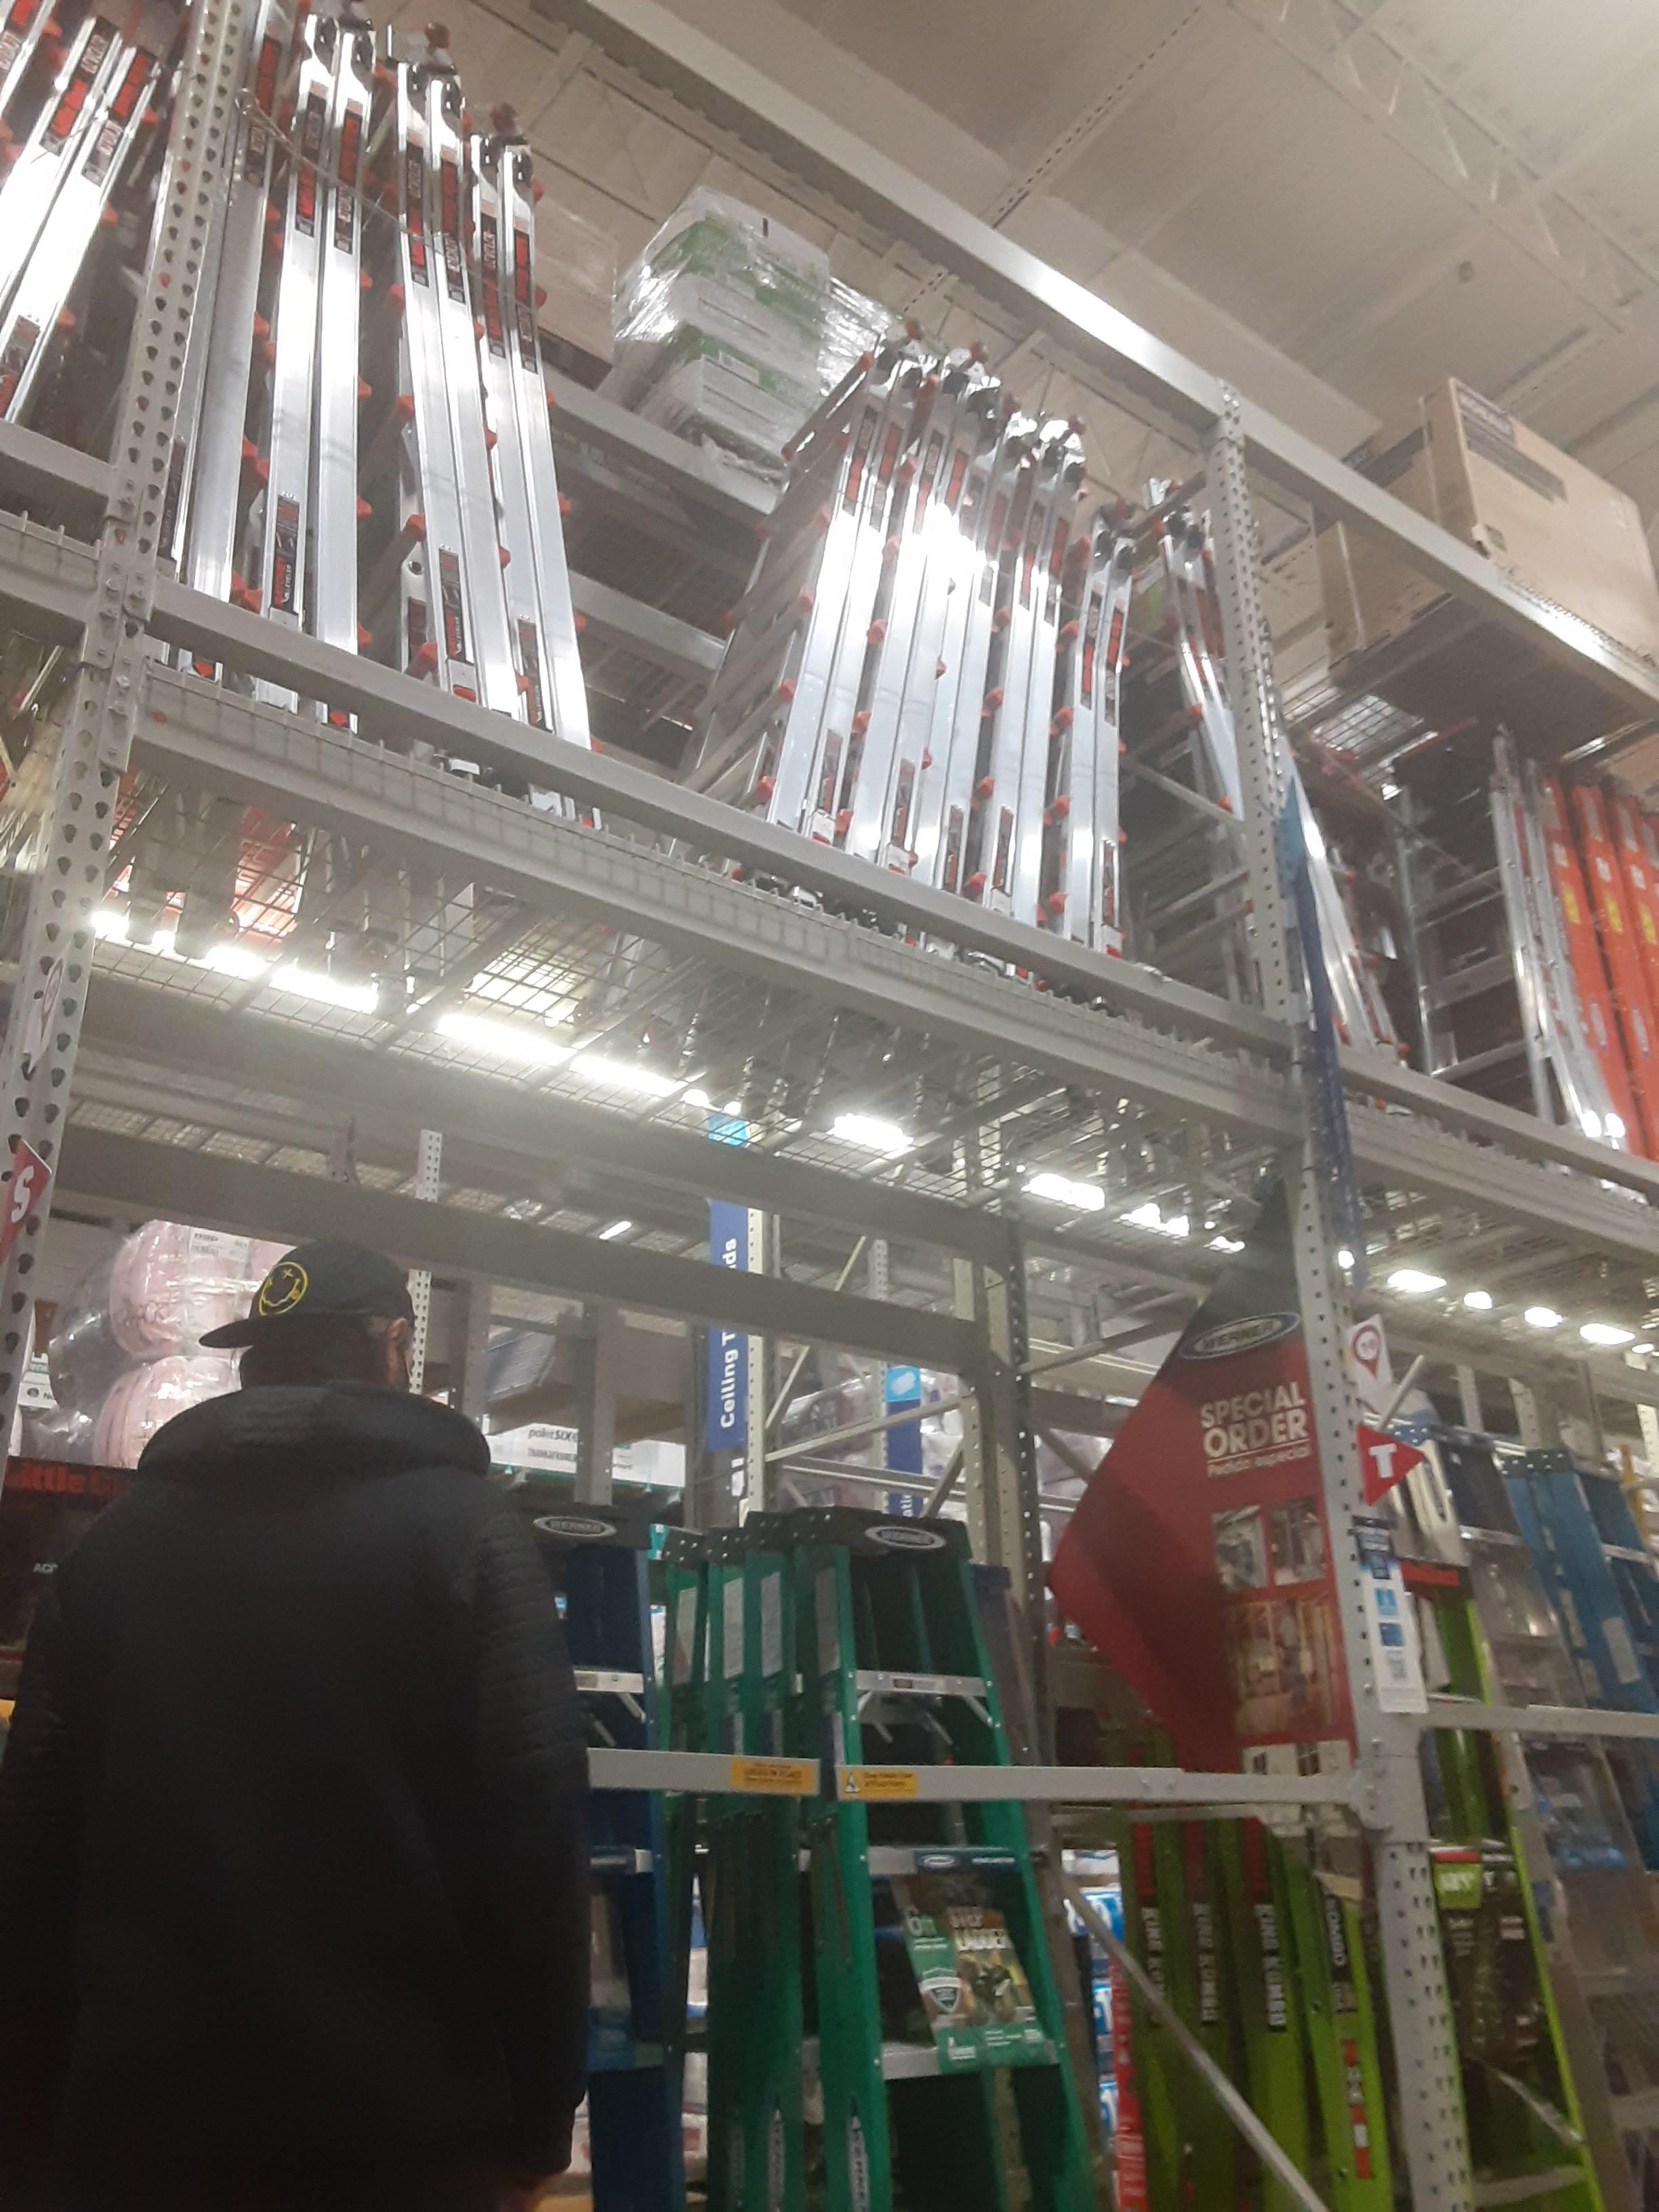 You heard of needing scissors to open scissors packaging, now get ready to need a ladder to get a ladder